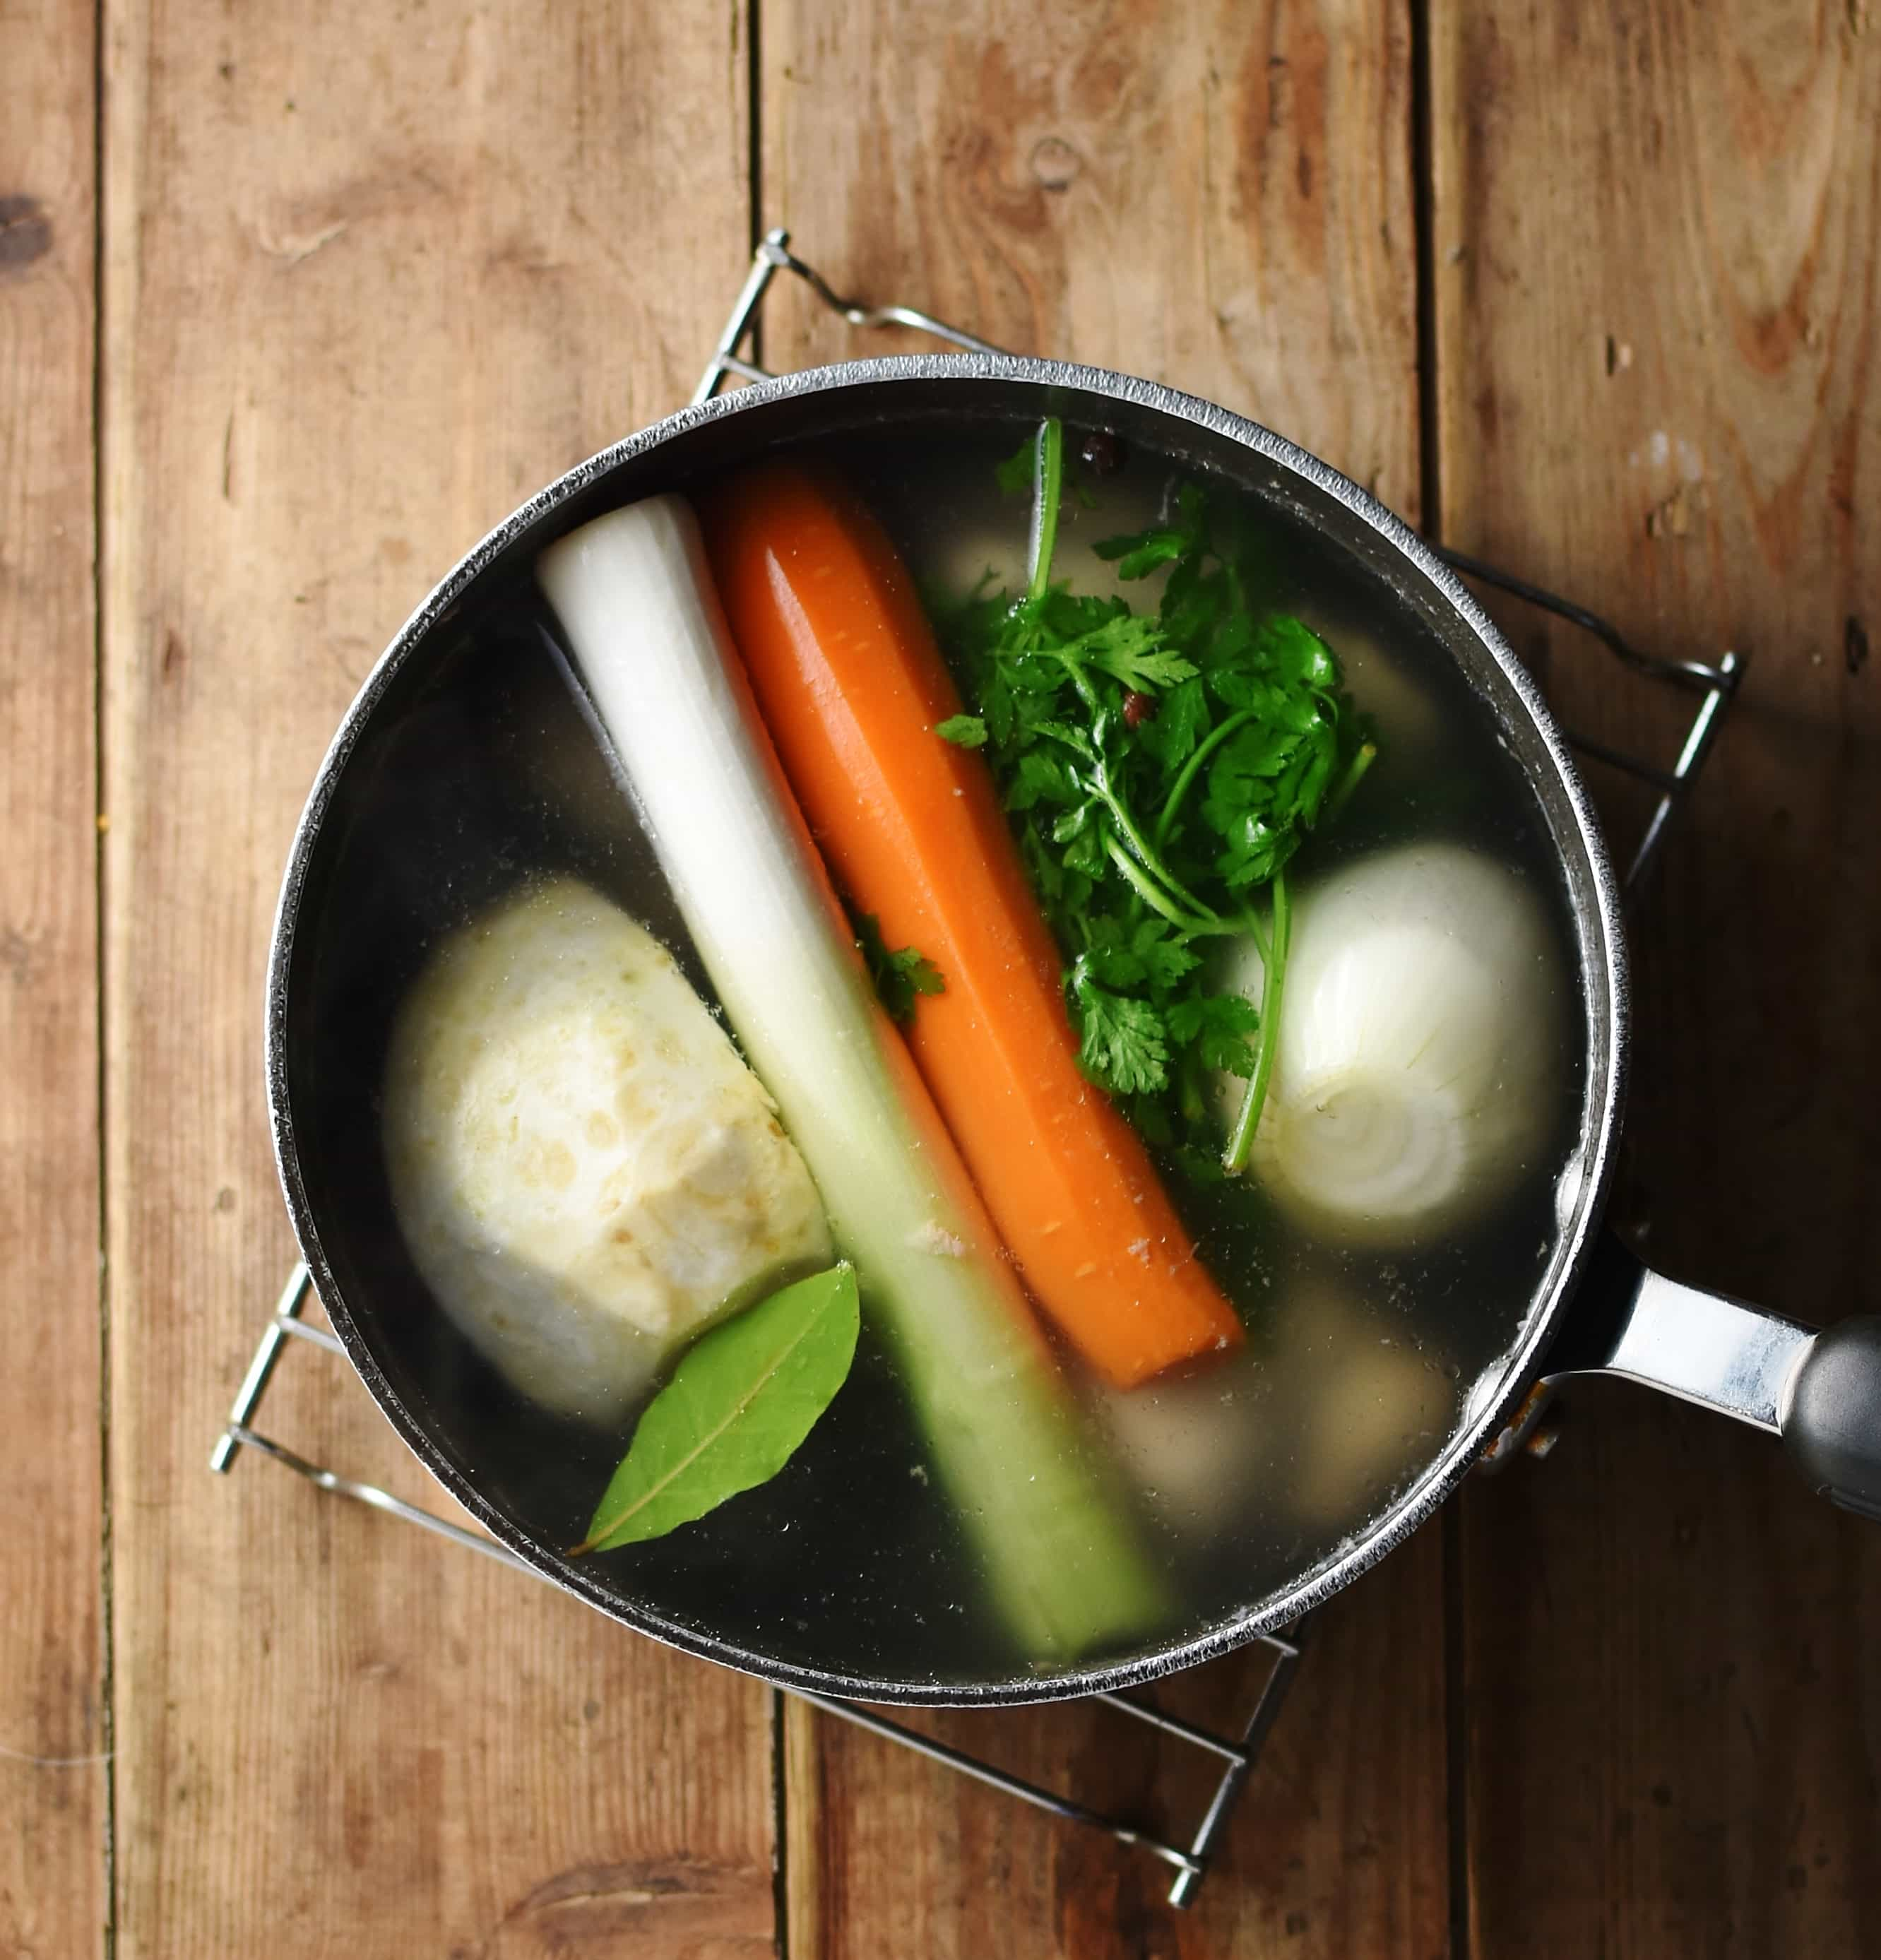 Whole, peeled carrot, onion, leek and celeriac with bay leaf and parsley in large pot with water.